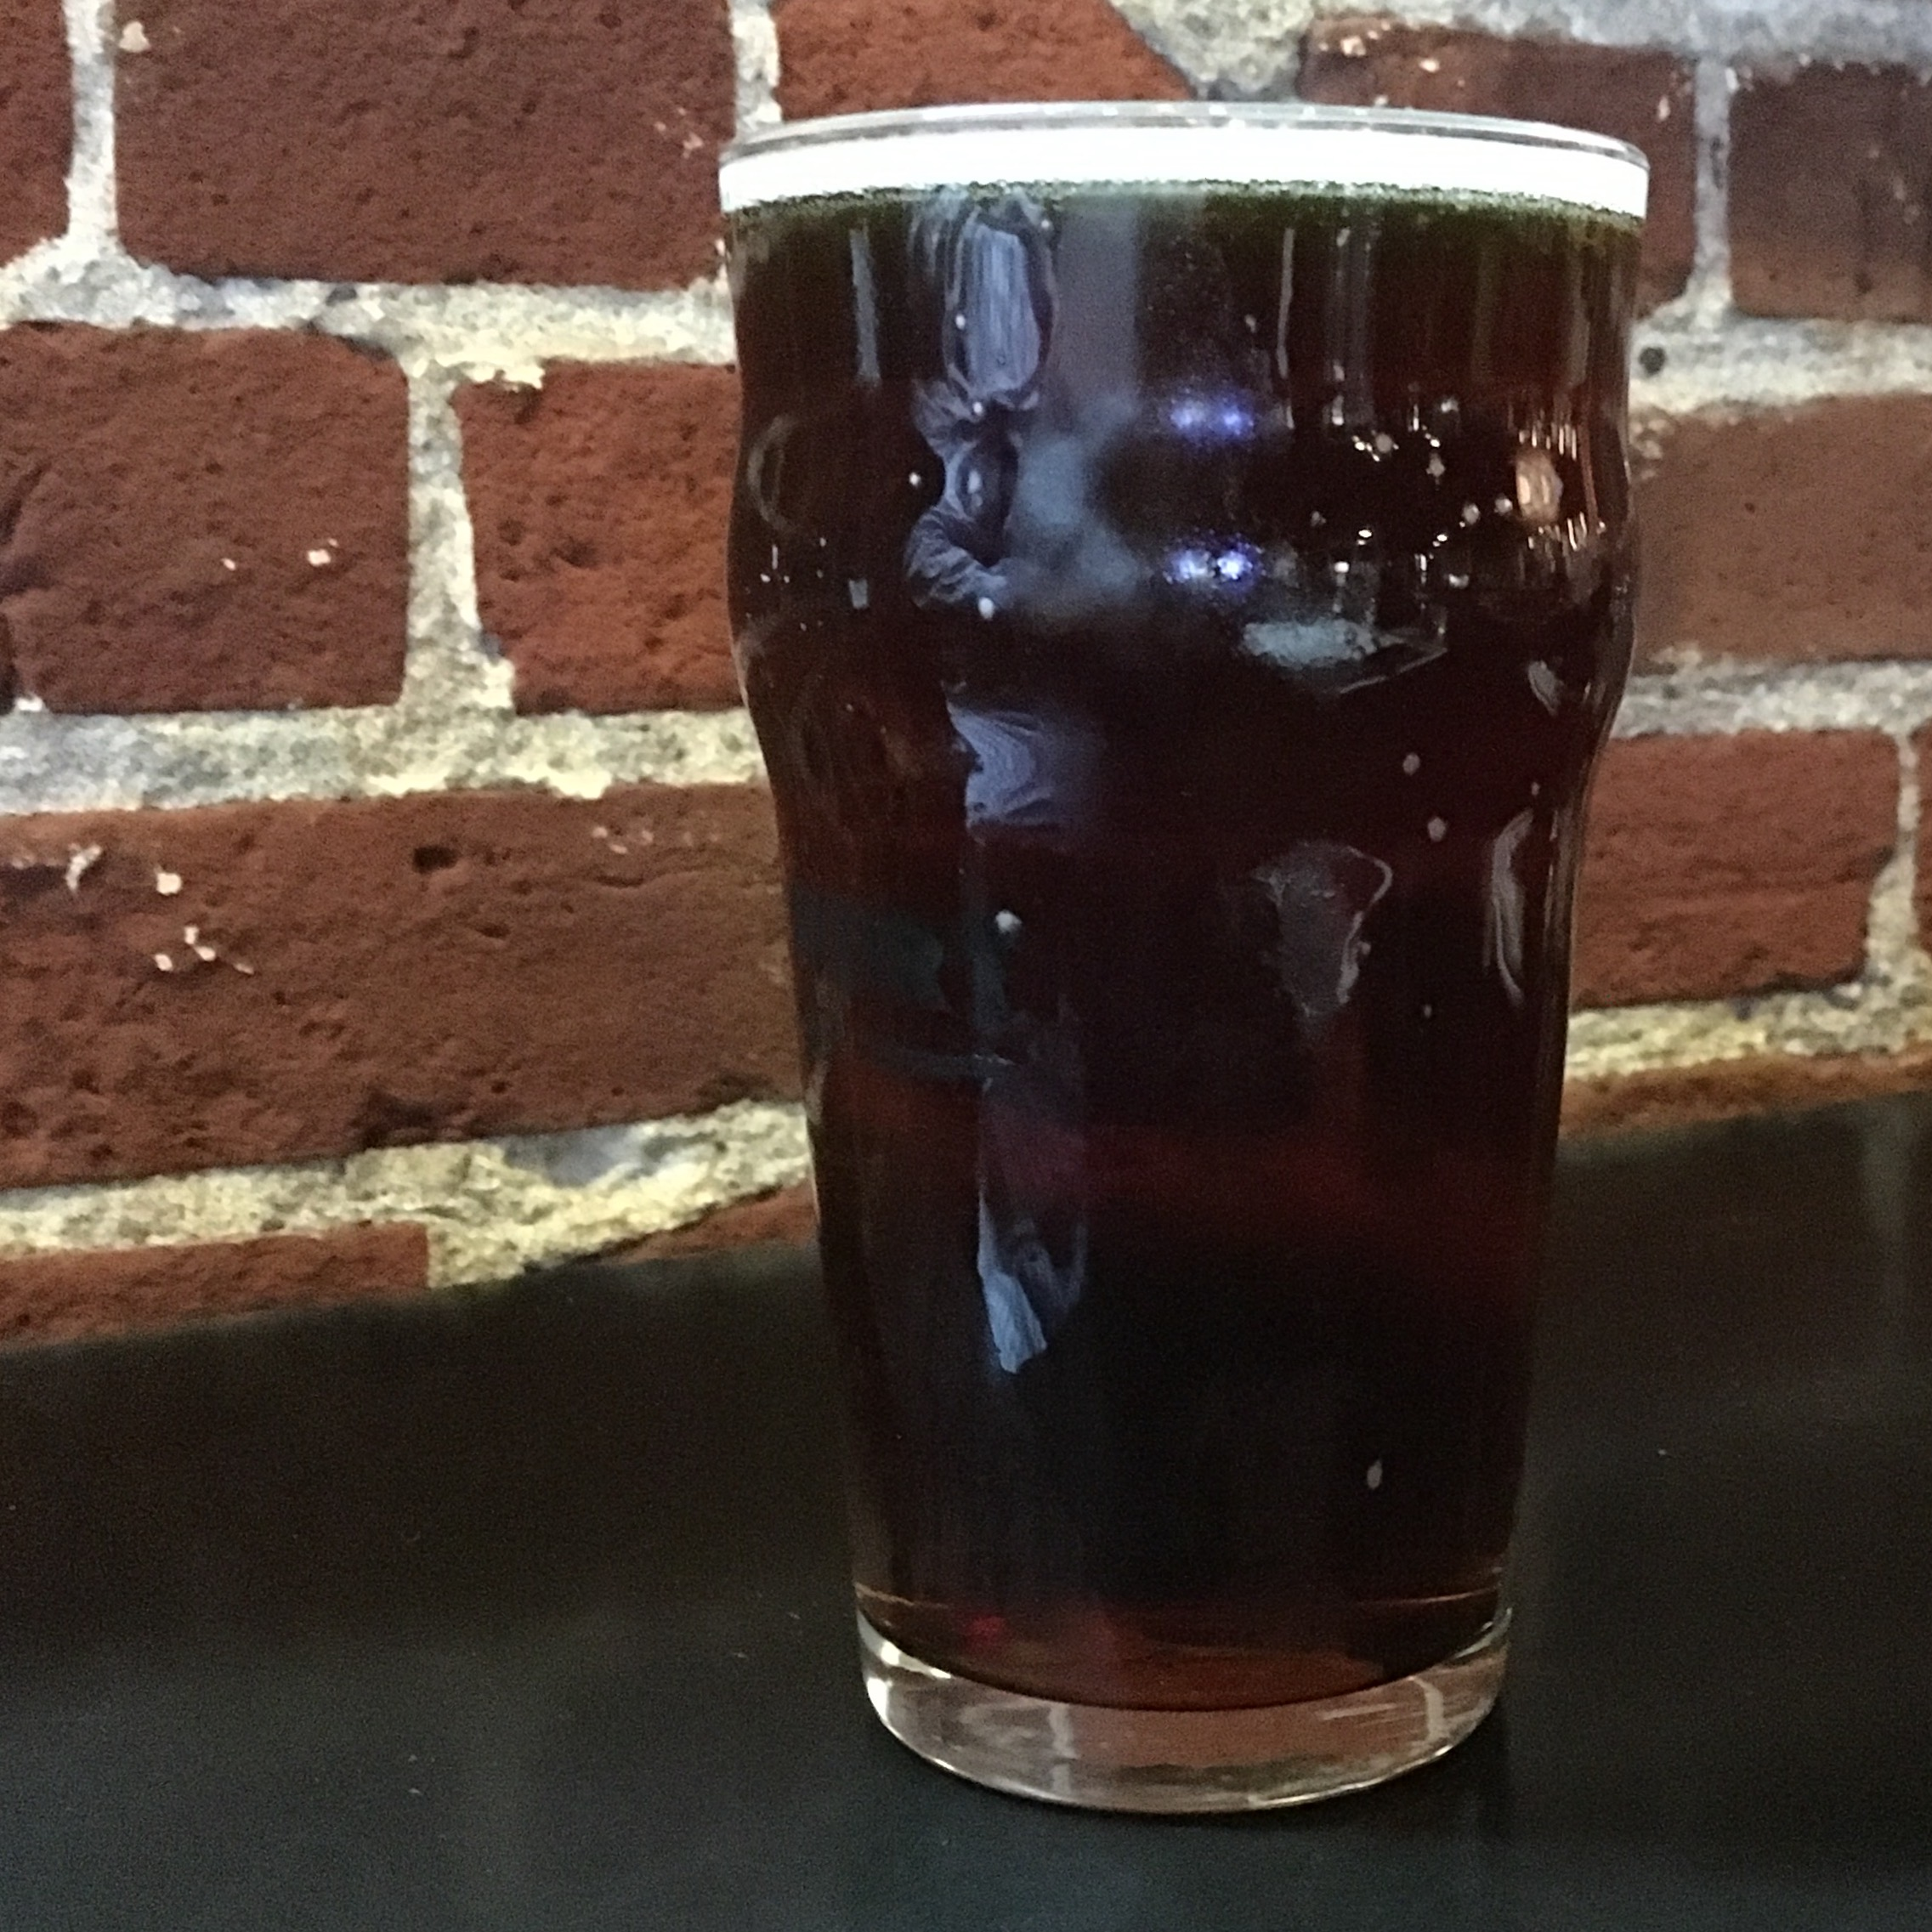 An Imperial Pint of BridgePort Brewing Stumptown Oatmeal Red Ale (ORA) at the pub in Portland, Oregon.